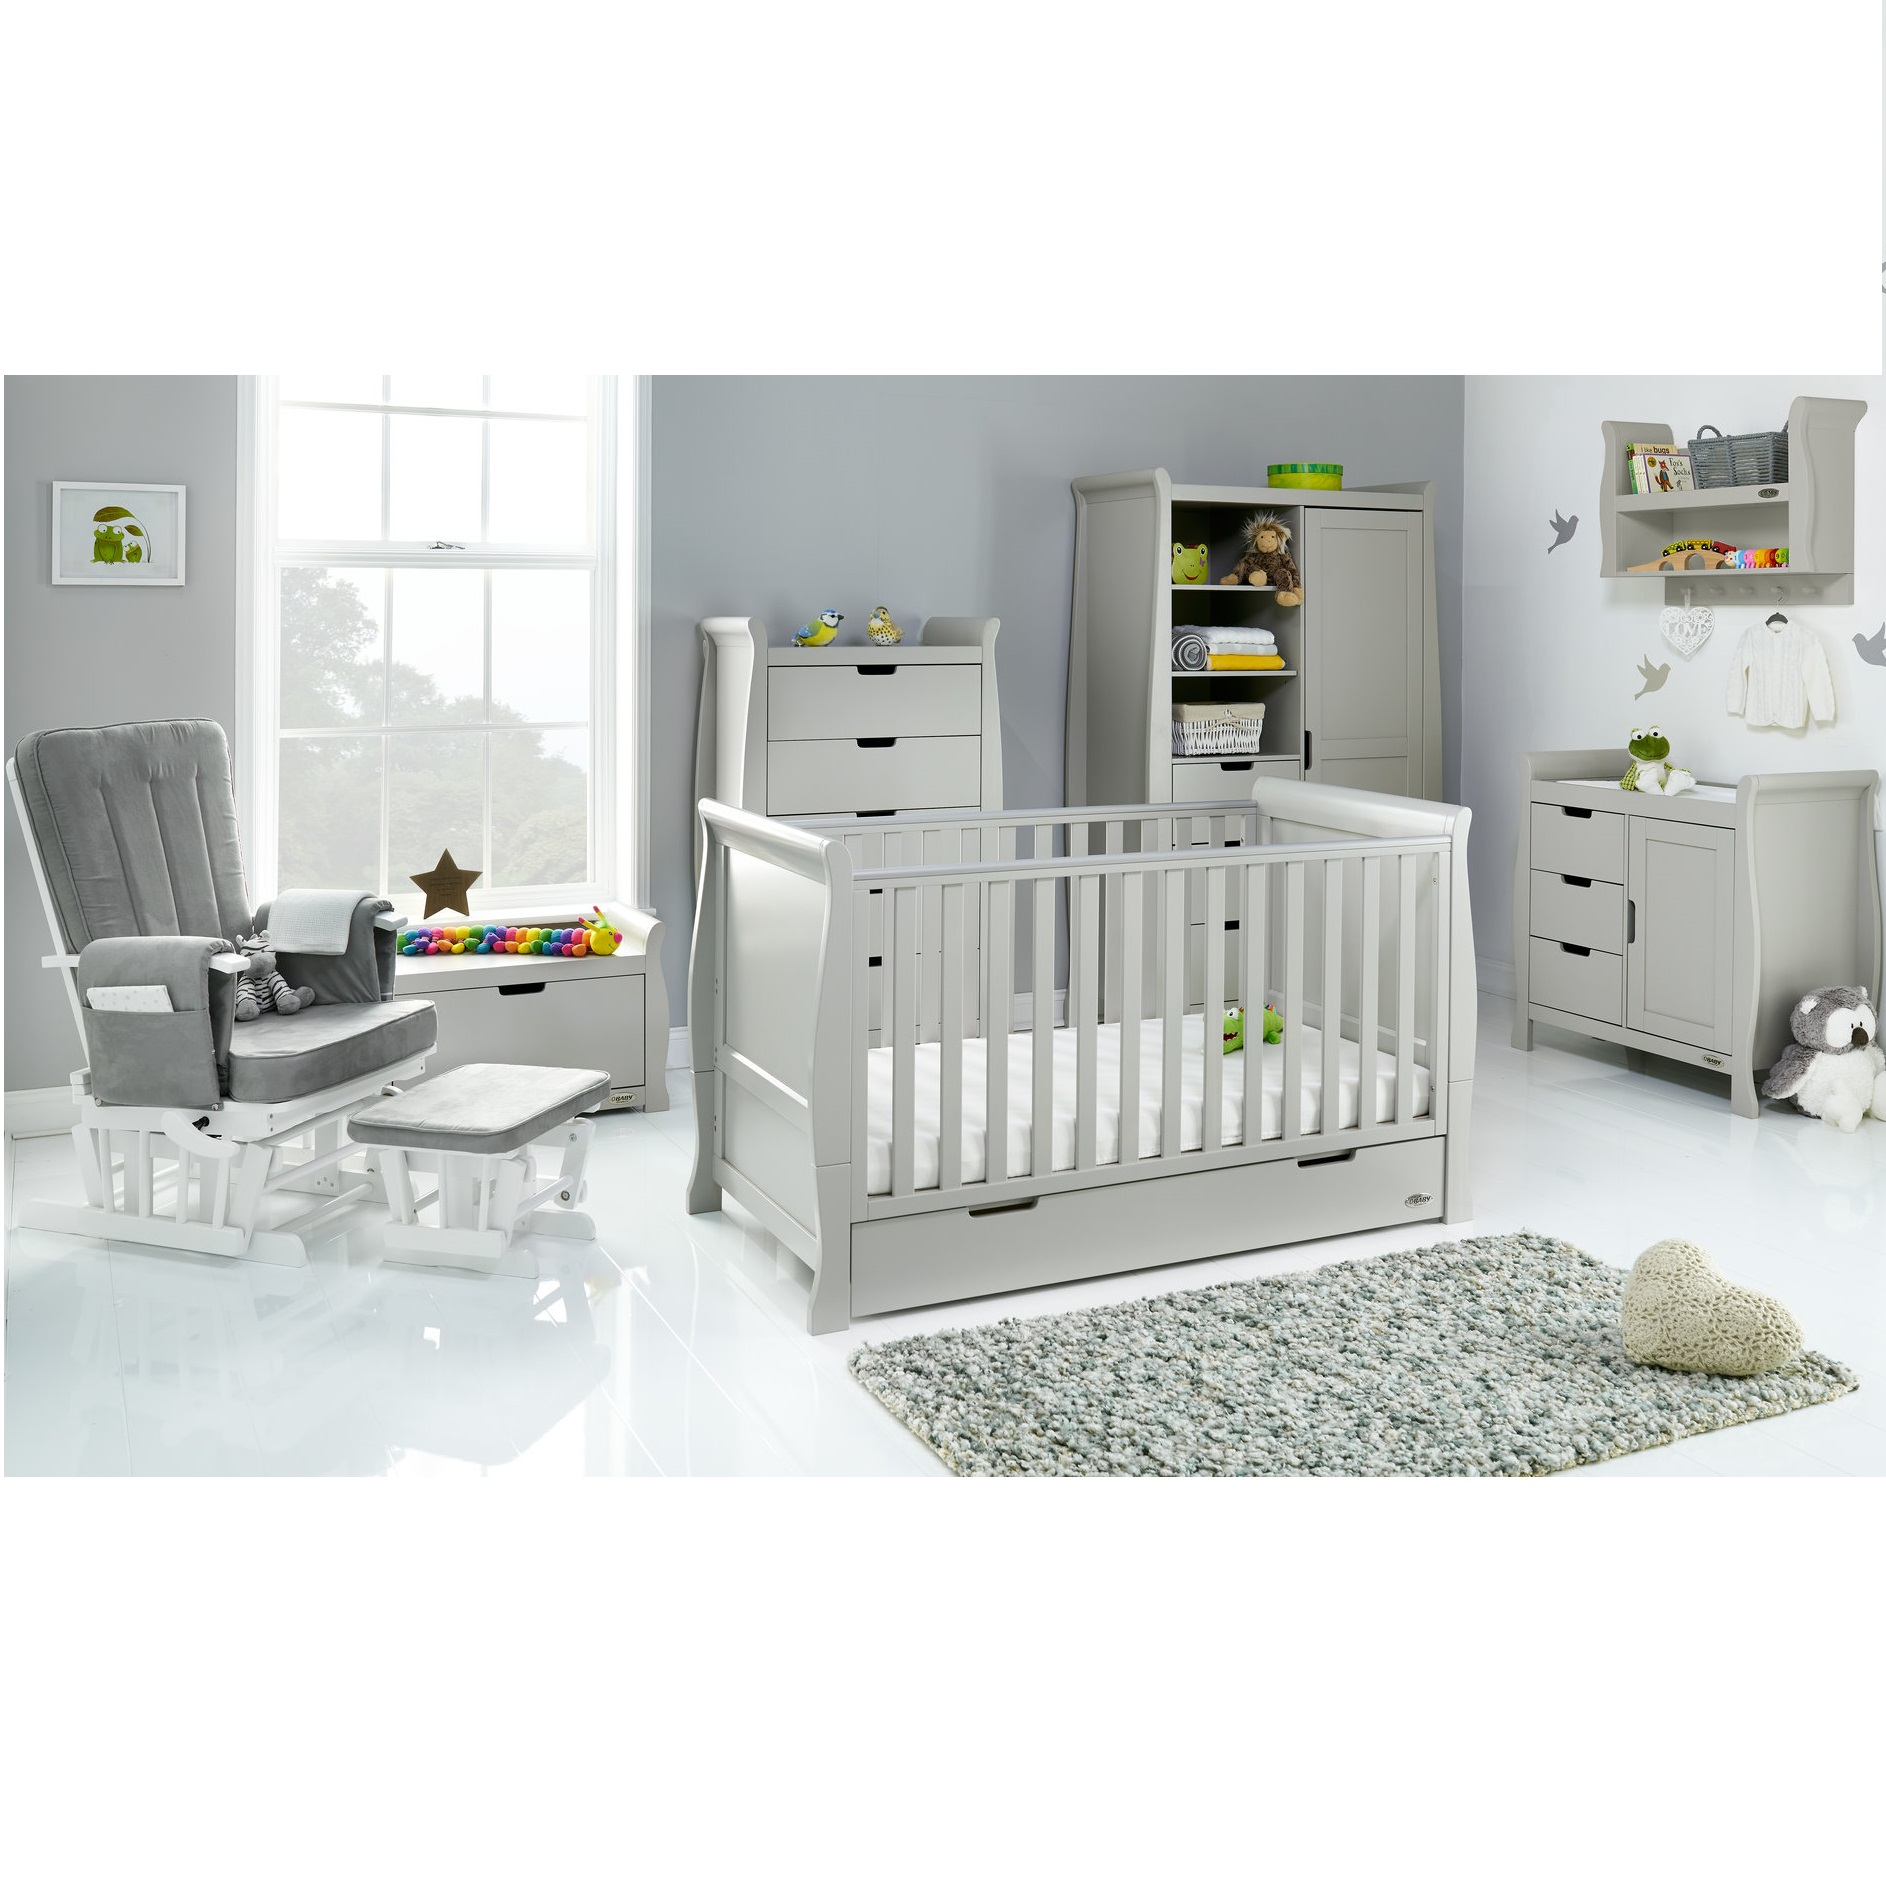 Obaby Stamford Classic 7 Piece Nursery Room Set